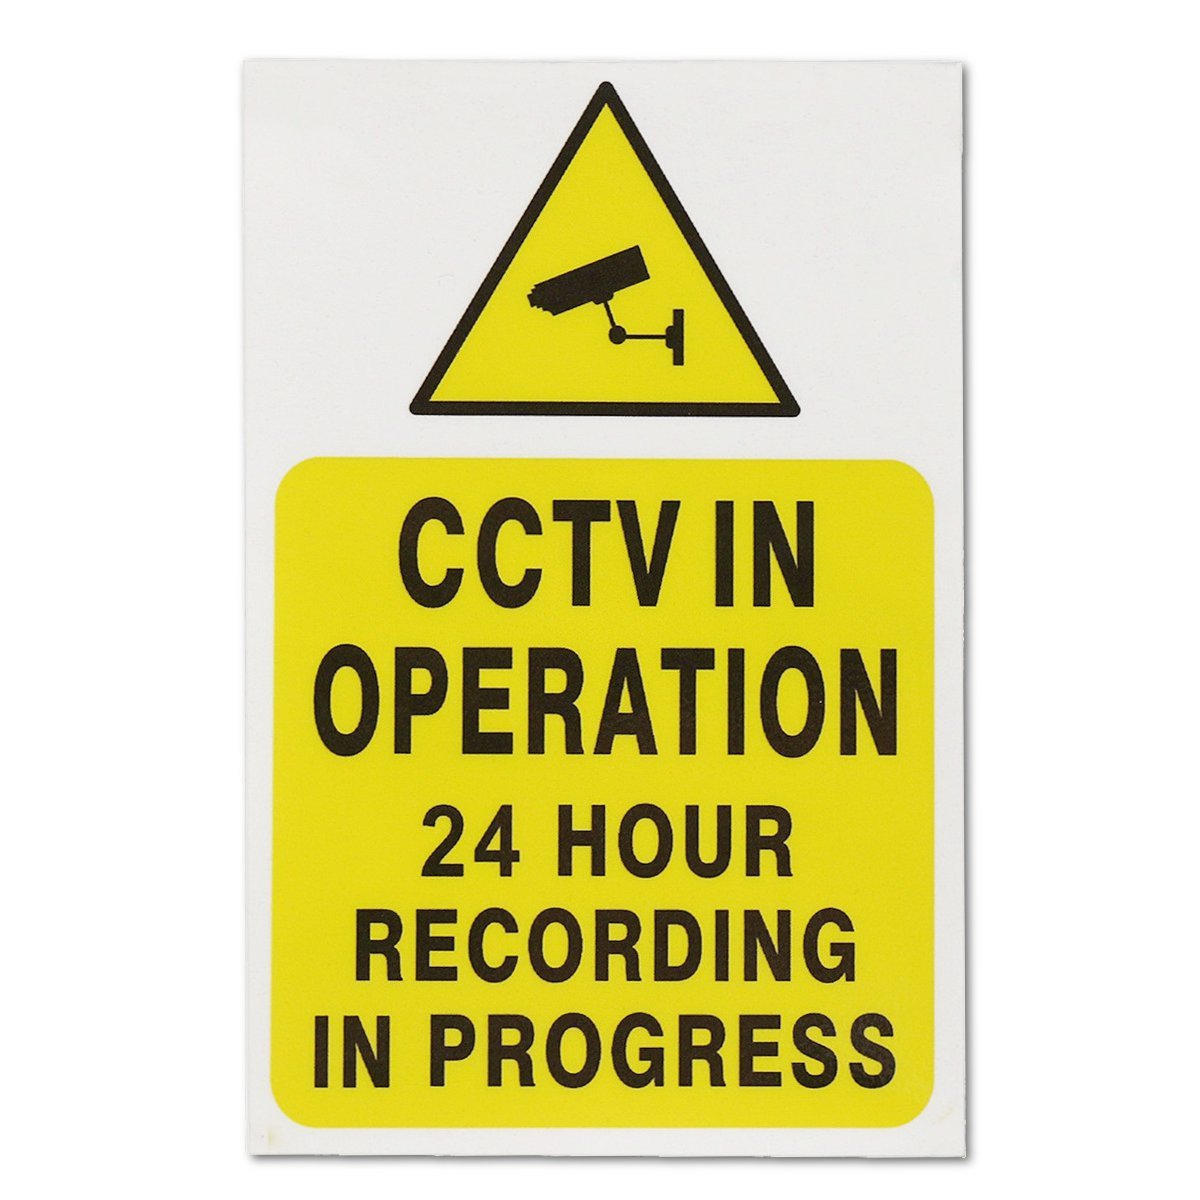 CCTV IN OPERATION 24 HOURS RECORDING IN PROGRESS Window Camera Warning Sticker Safty Sign Self-adhensive Safety Security Decal